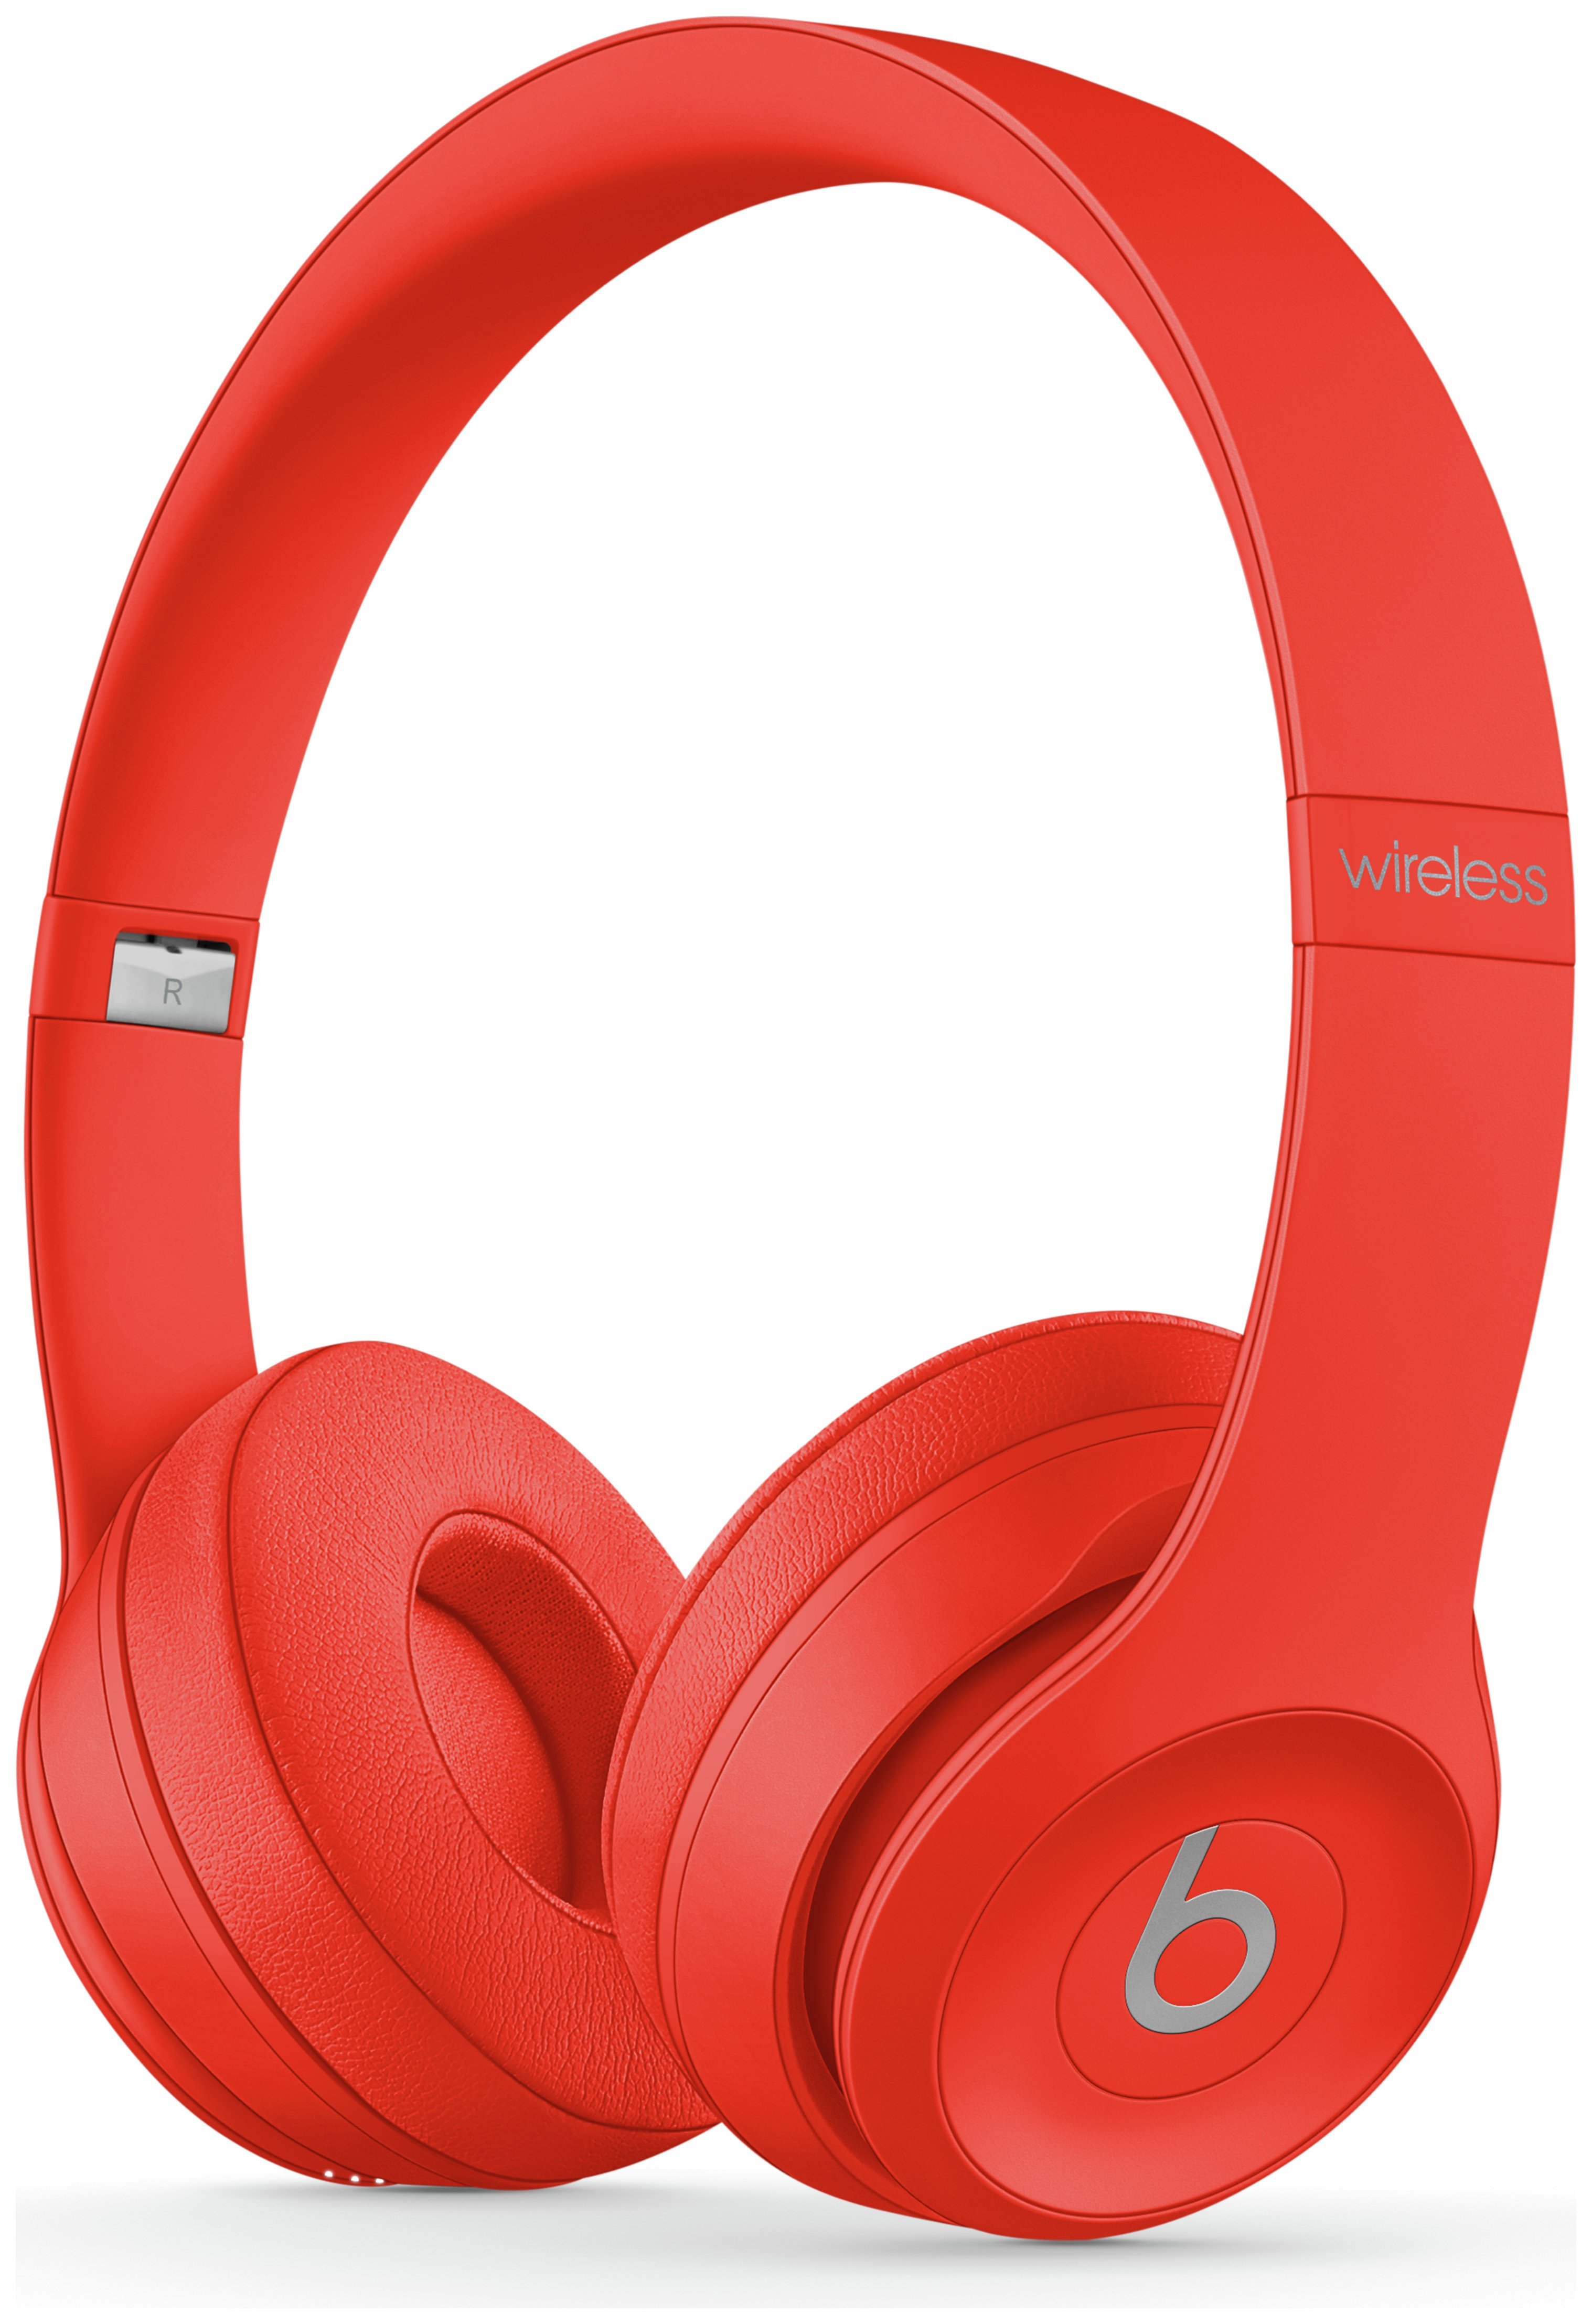 Image of Beats by Dre Solo 3 On - Ear Wireless Headphones - Red